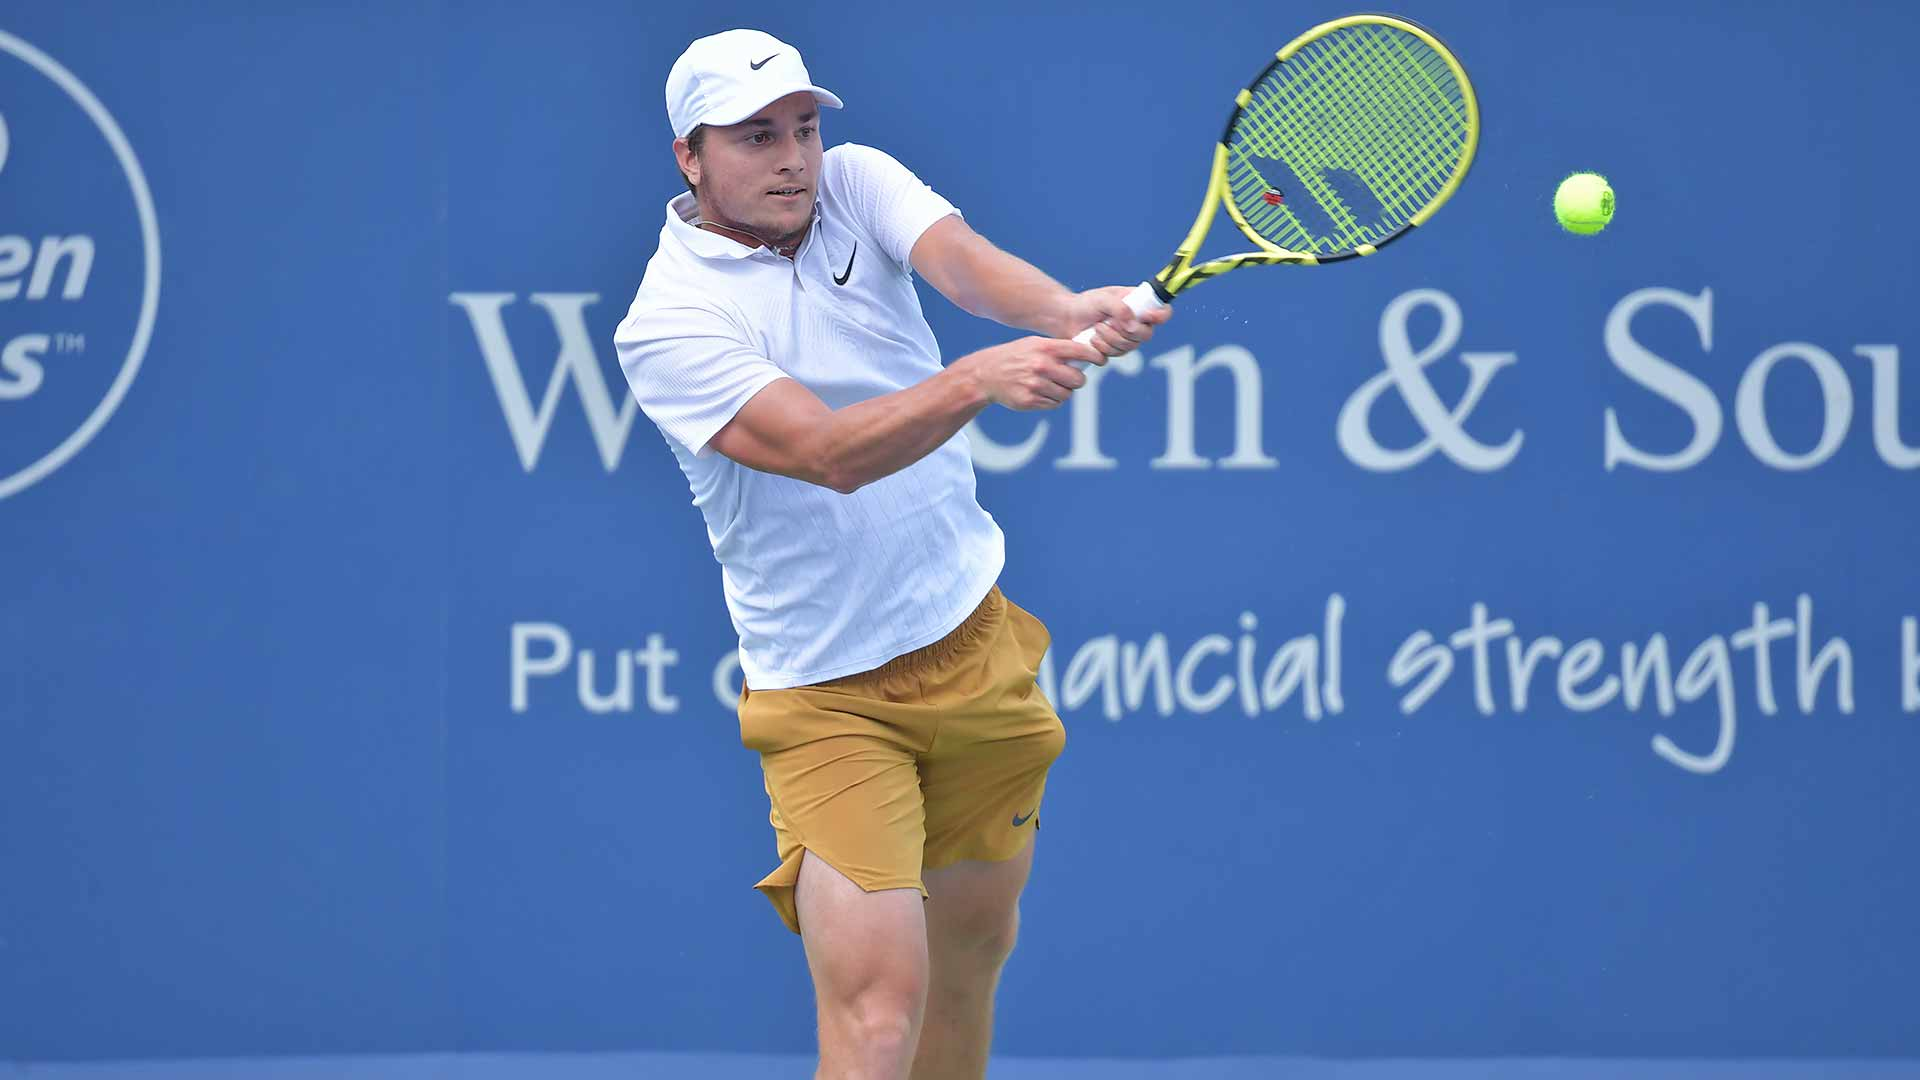 Miomir Kecmanovic improves to 1-1 against the Top 10 on Wednesday in Cincinnati.